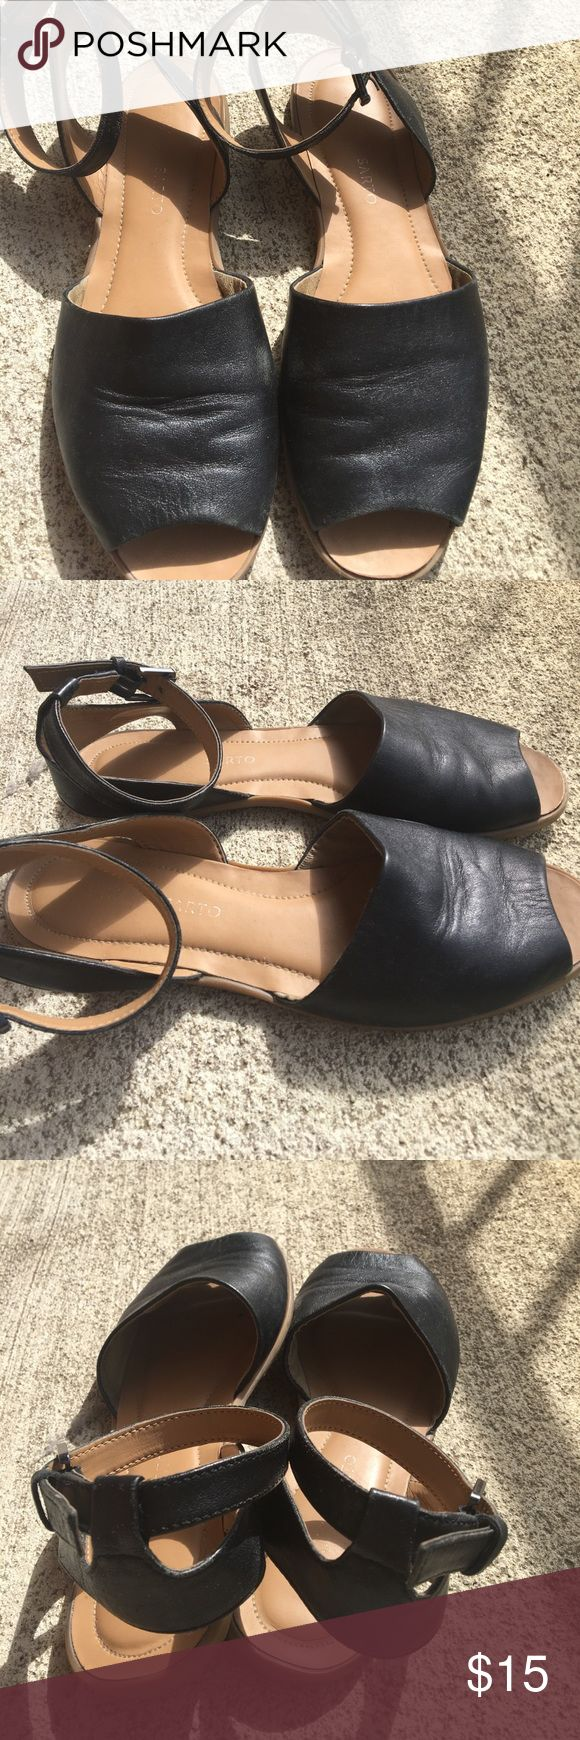 Black sandals size 7 - Cute And Comfy Franco Sarto Sandals Size 7 Cute And Comfy Franco Sarto Black Sandals Size